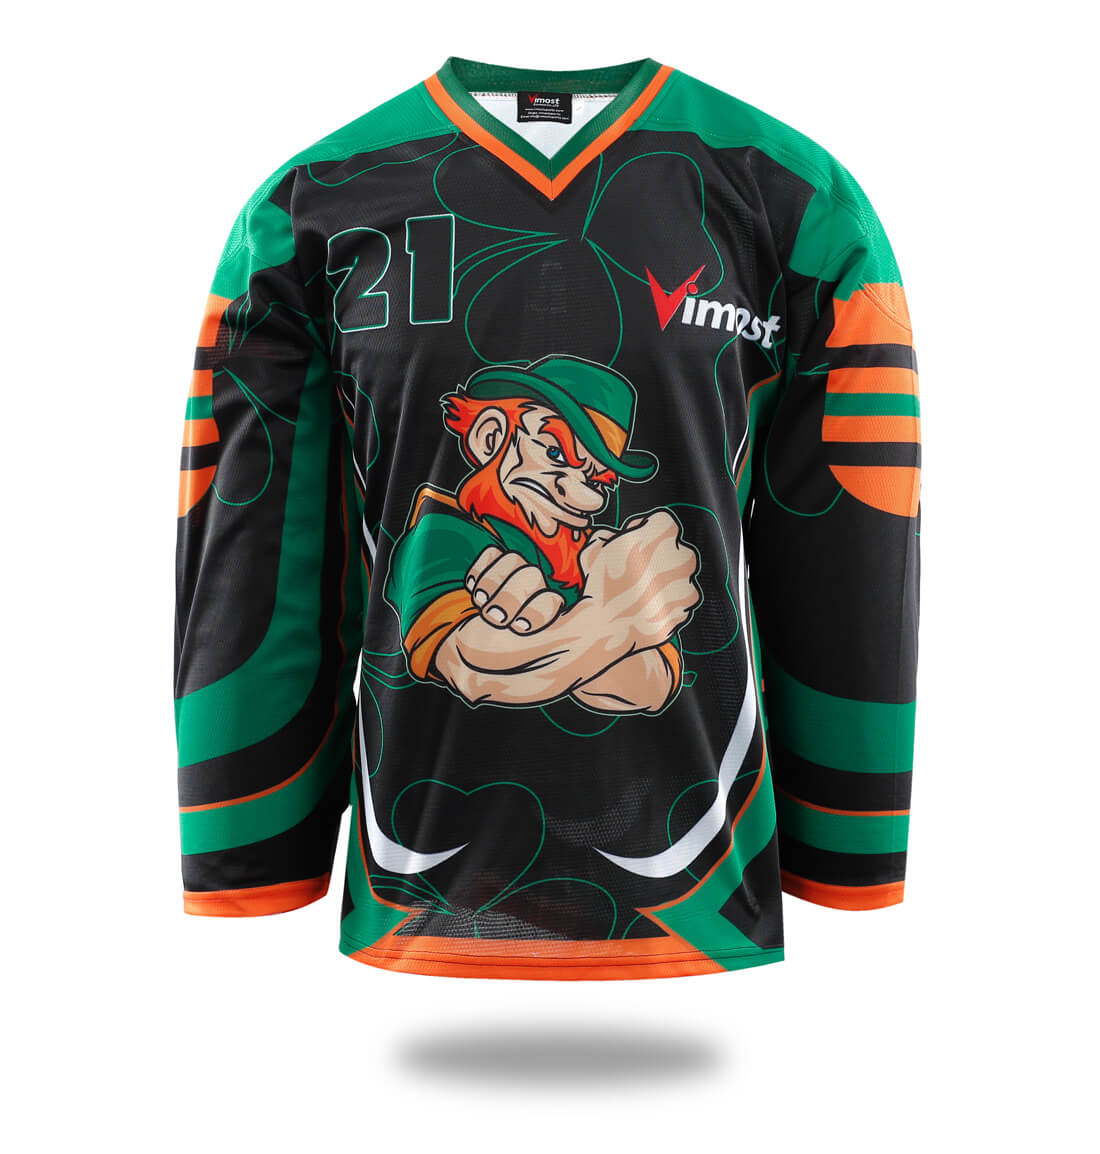 Hot Sales Product Ireland Design Ice Hockey Jersey